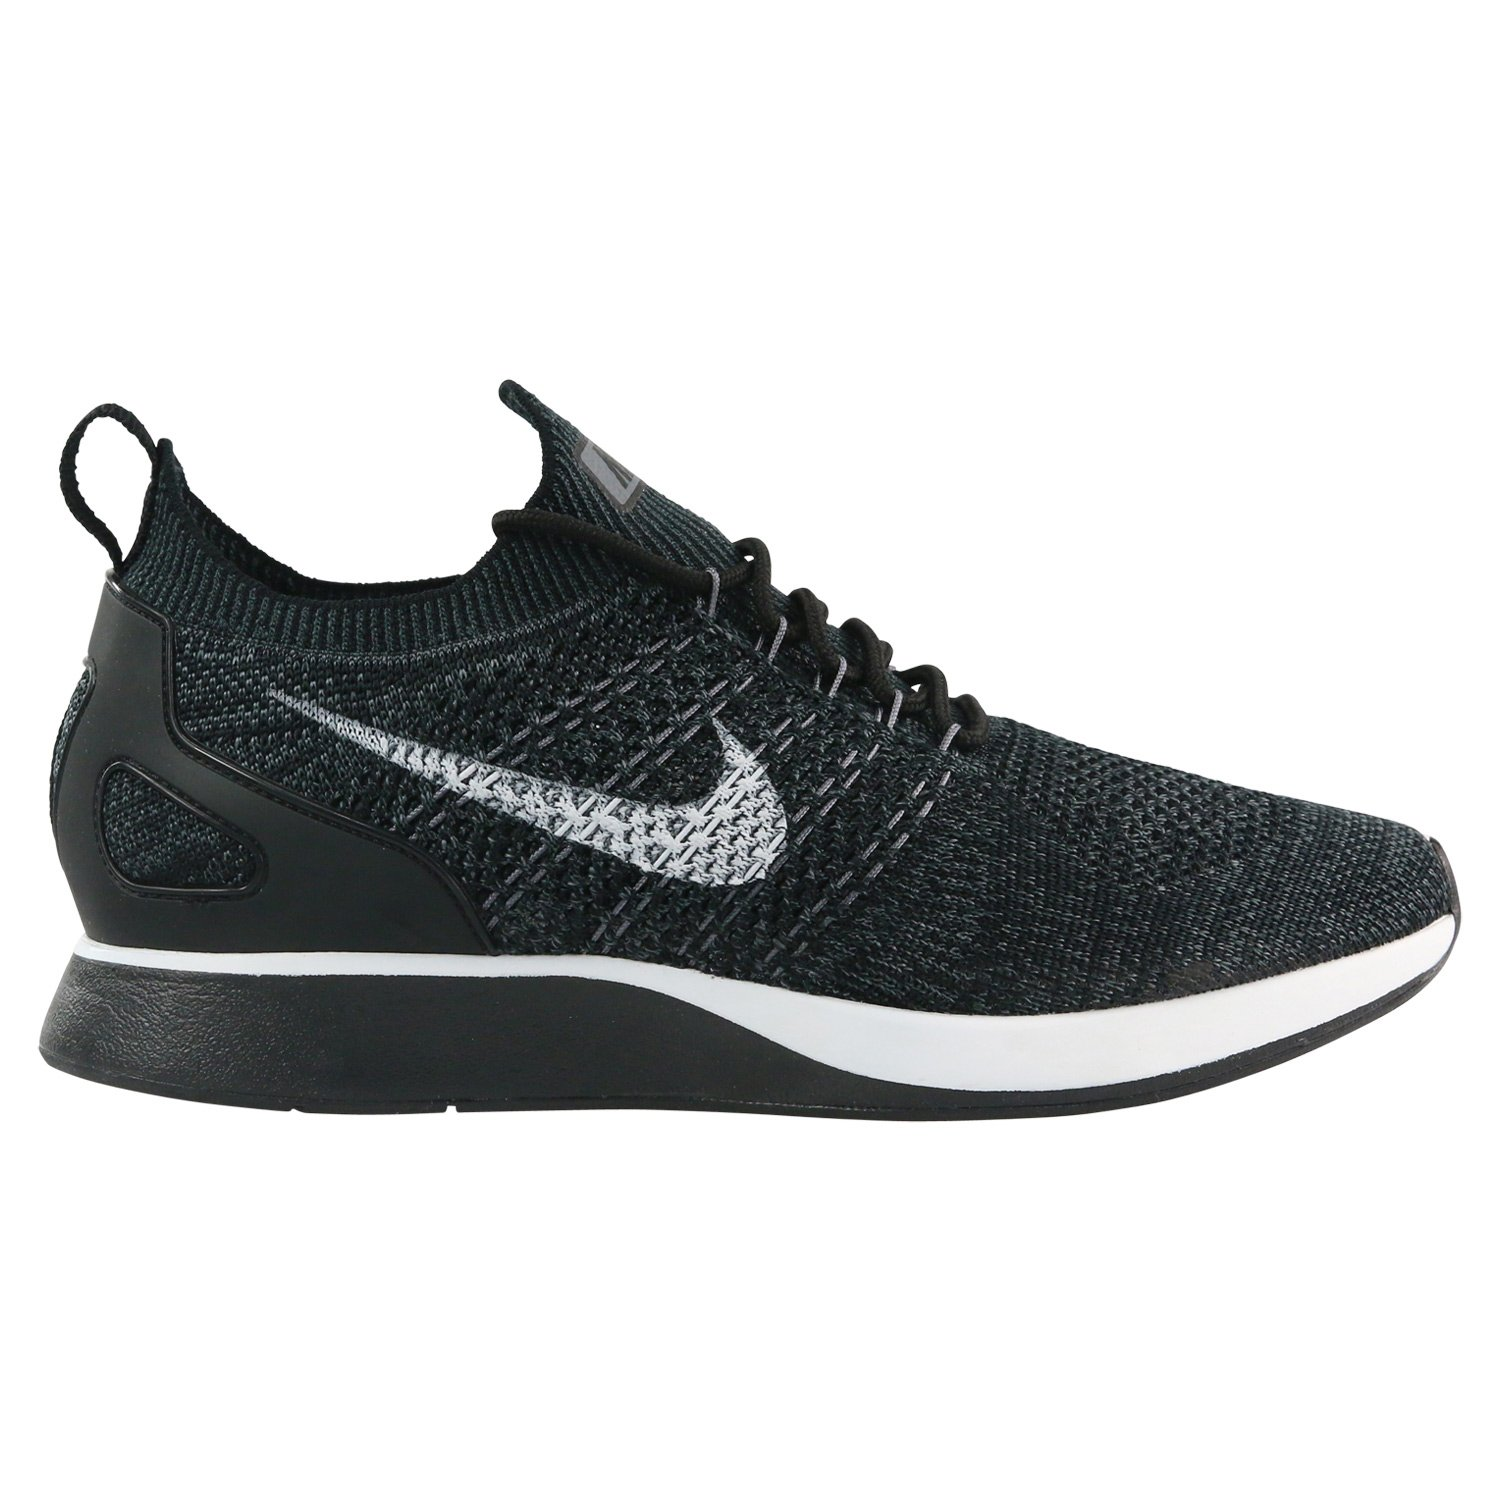 wholesale dealer e648f f886d Galleon - NIKE Air Zoom Mariah Flyknit Racer Men s Running Sneaker (12 D(M)  US)